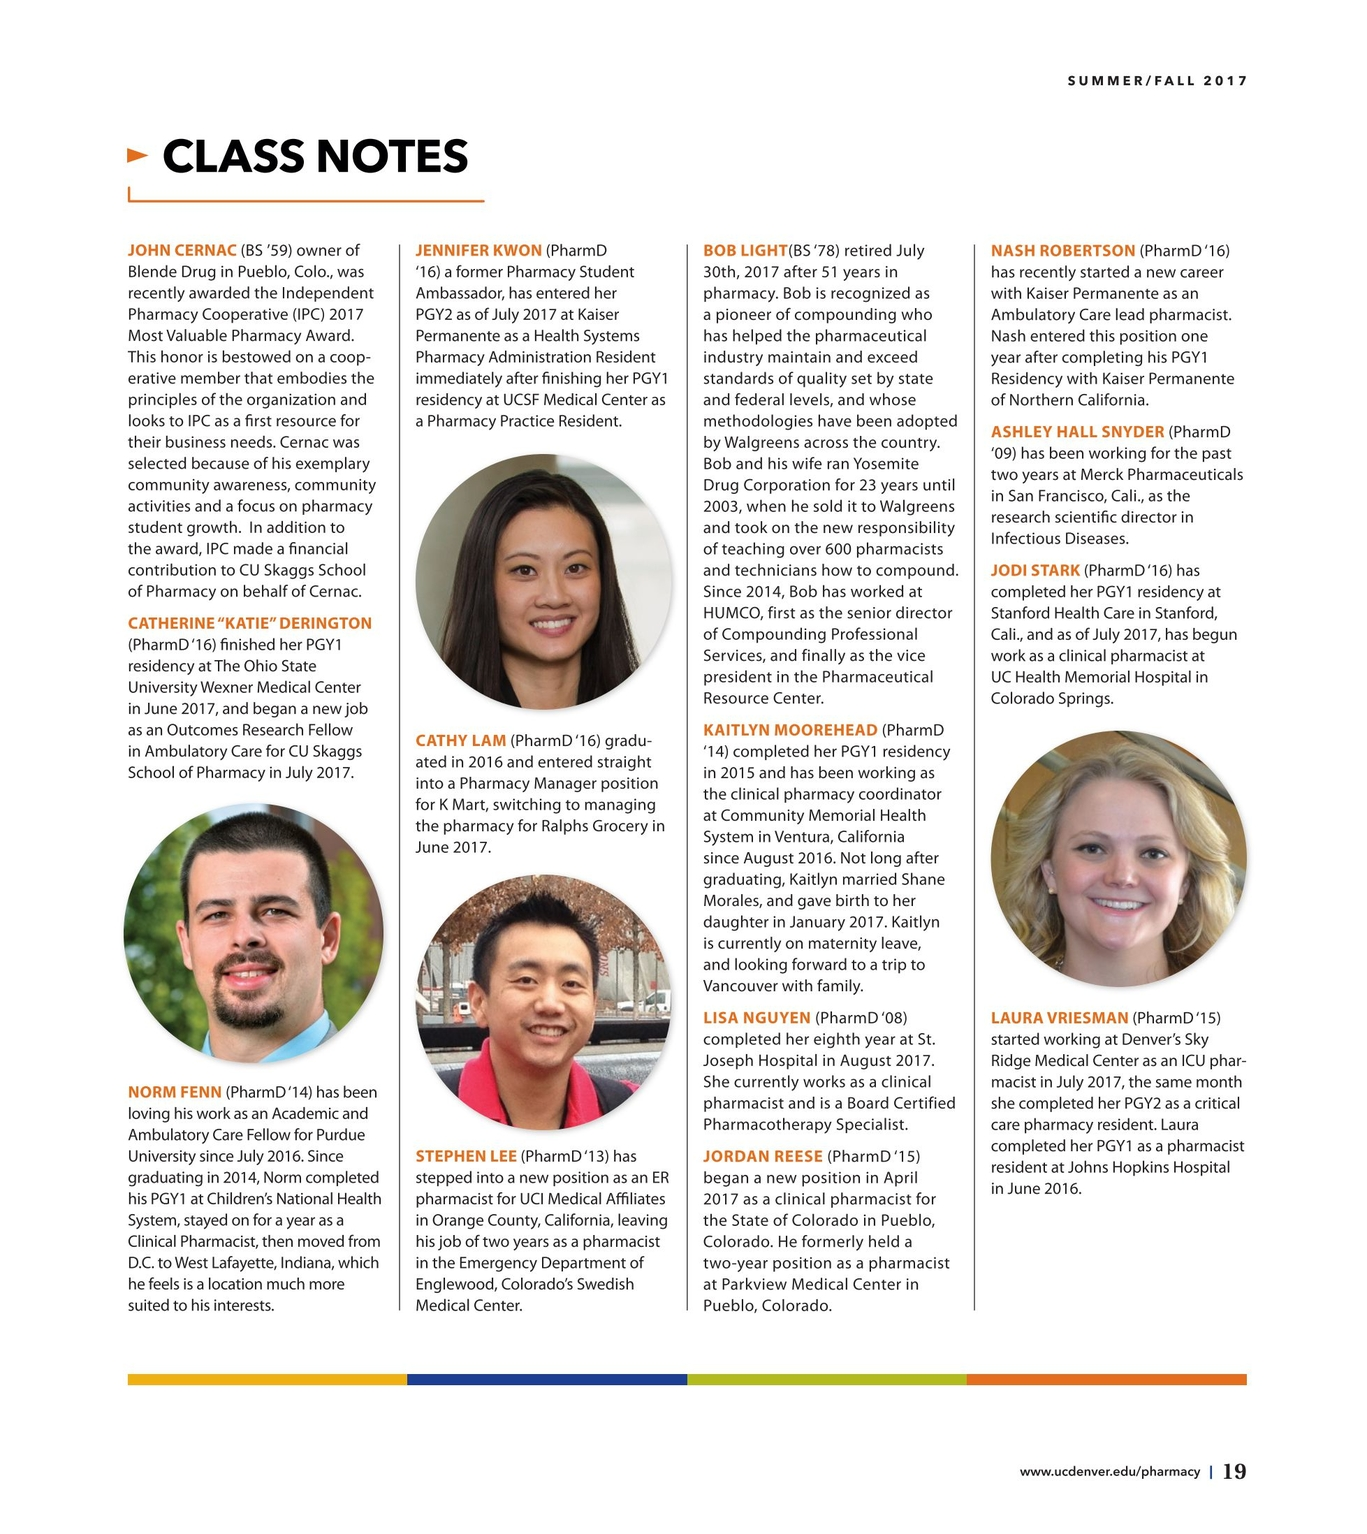 Pharmacy Perspectives - Summer/Fall 2017